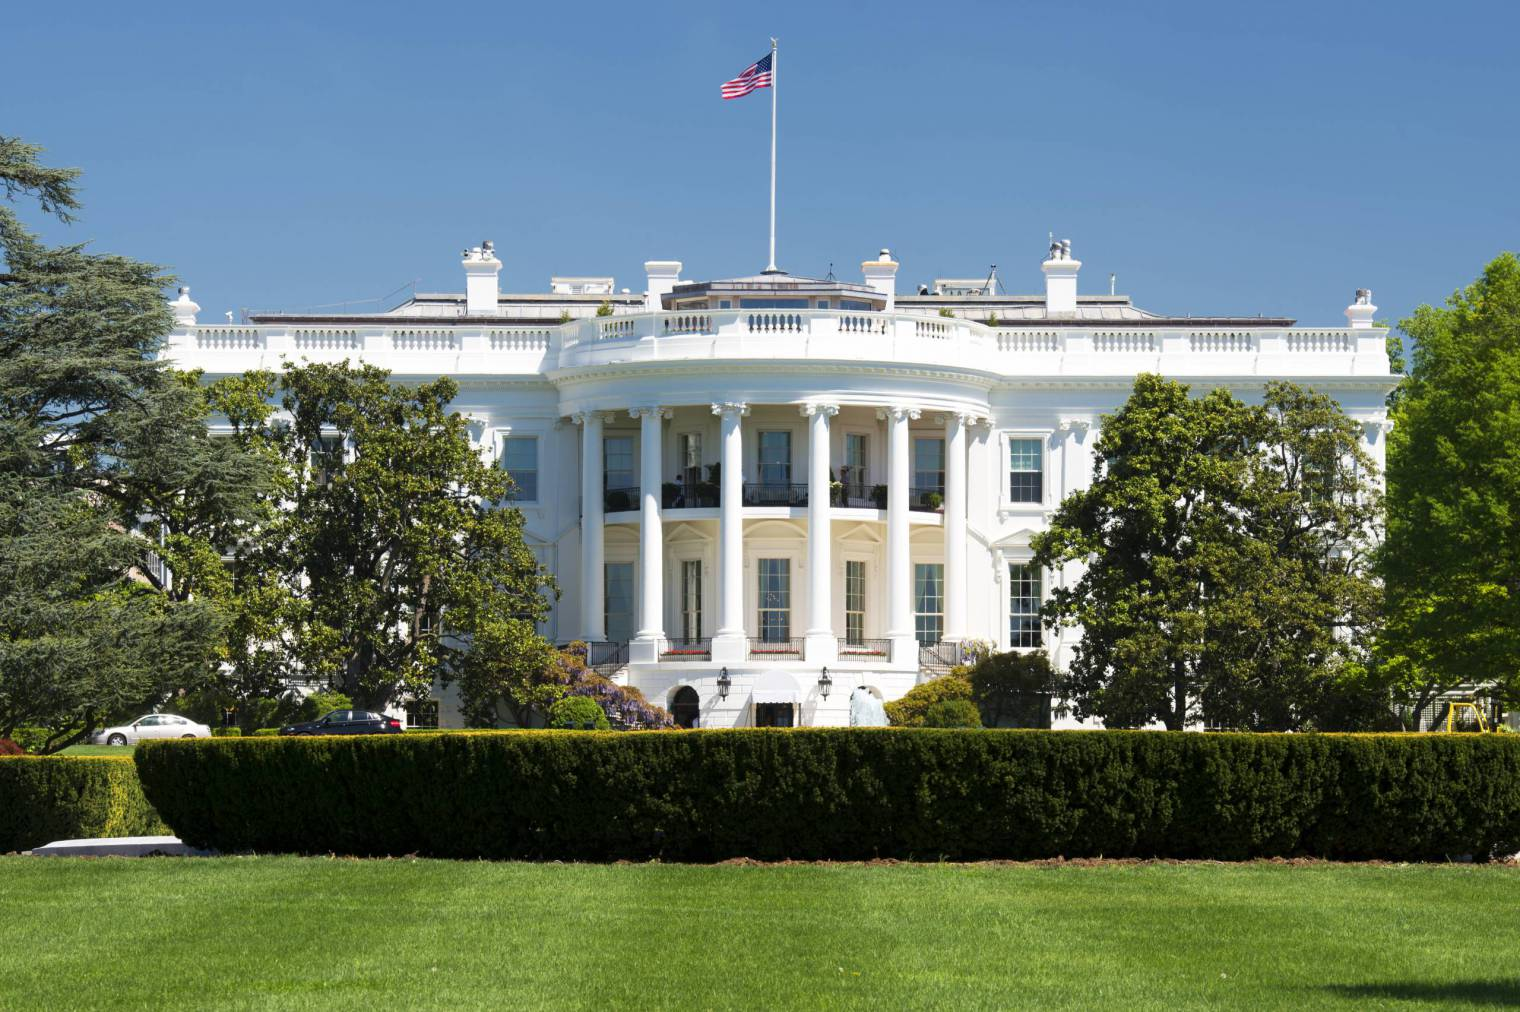 US Au Pair Programme hit by temporary Suspension after White House Proclamation